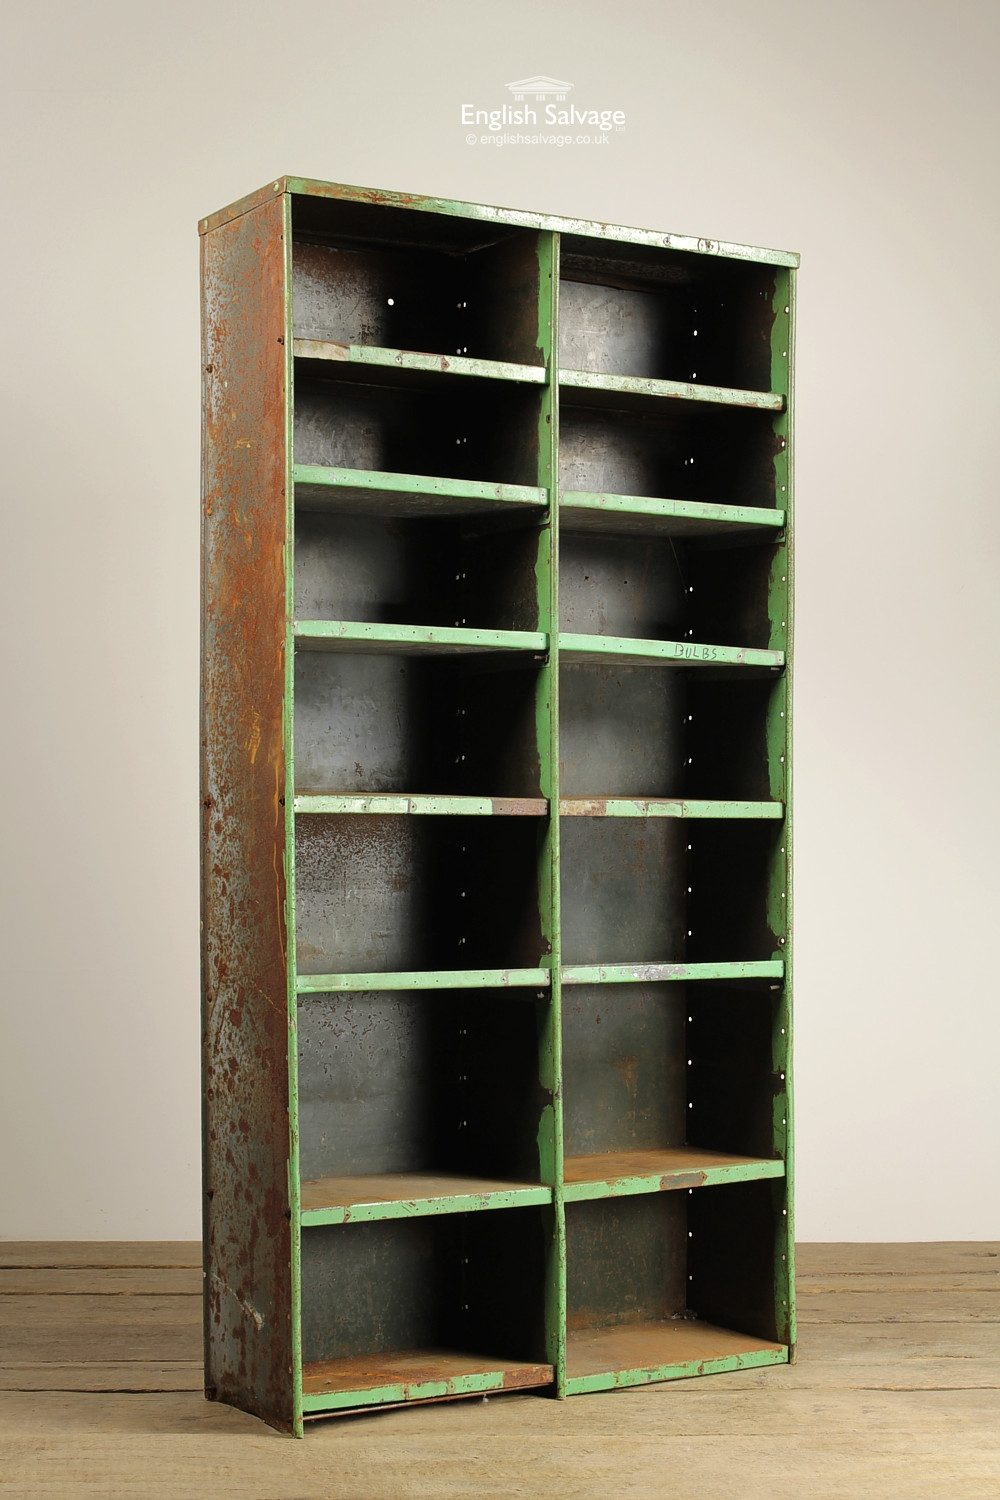 Vintage Steel Pigeon Hole Storage Shelf Unit